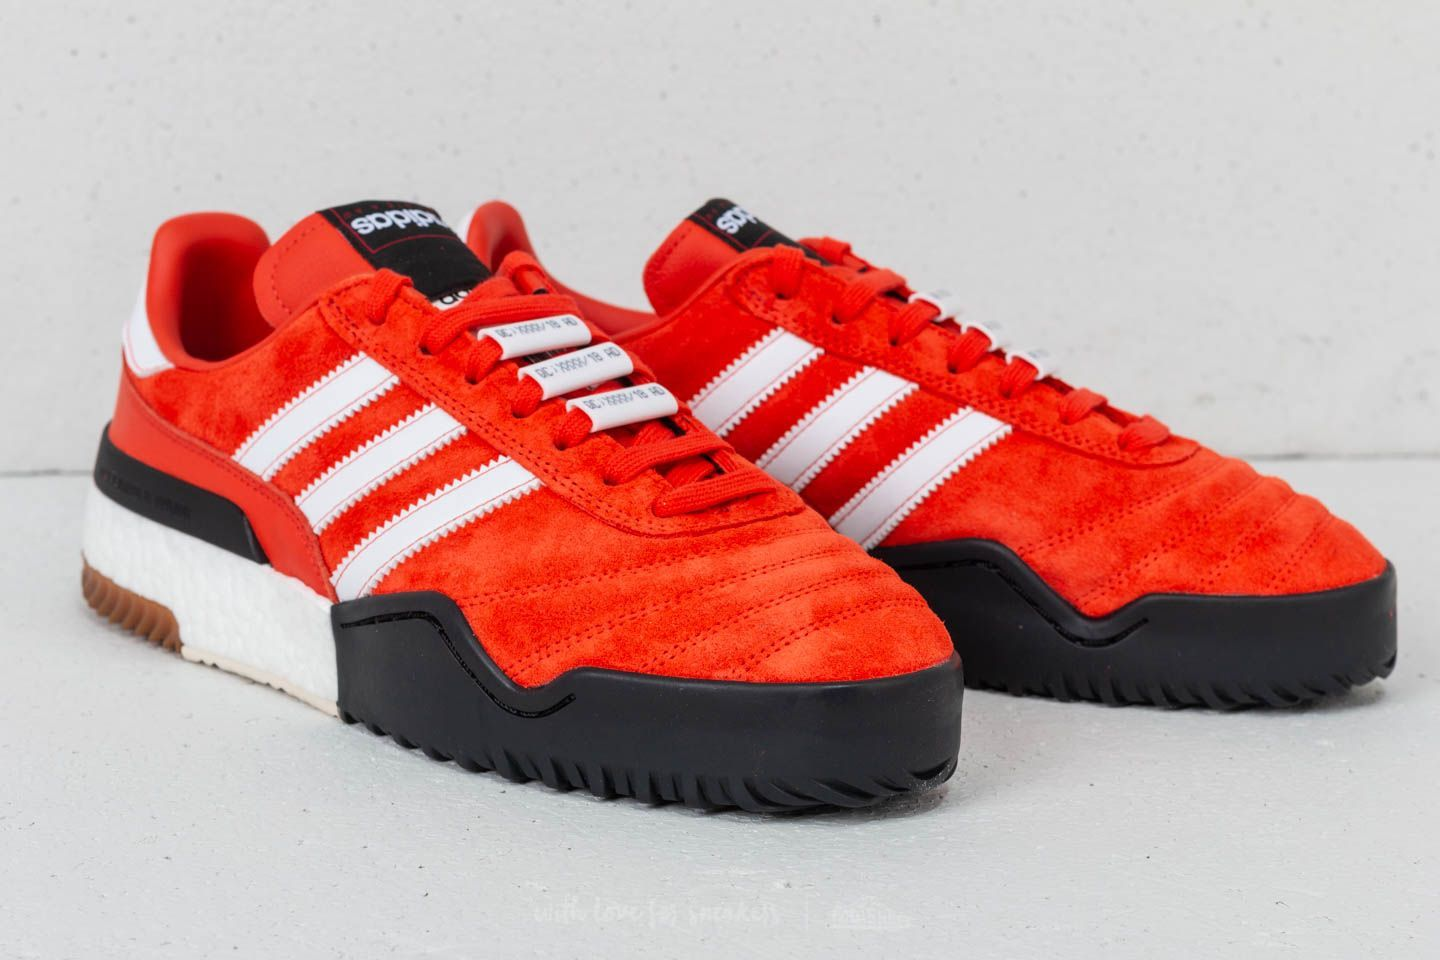 adidas Adidas x Alexander Wang Bball Soccer Bold Orange/ Ftw White/ Core Black MBxcdit